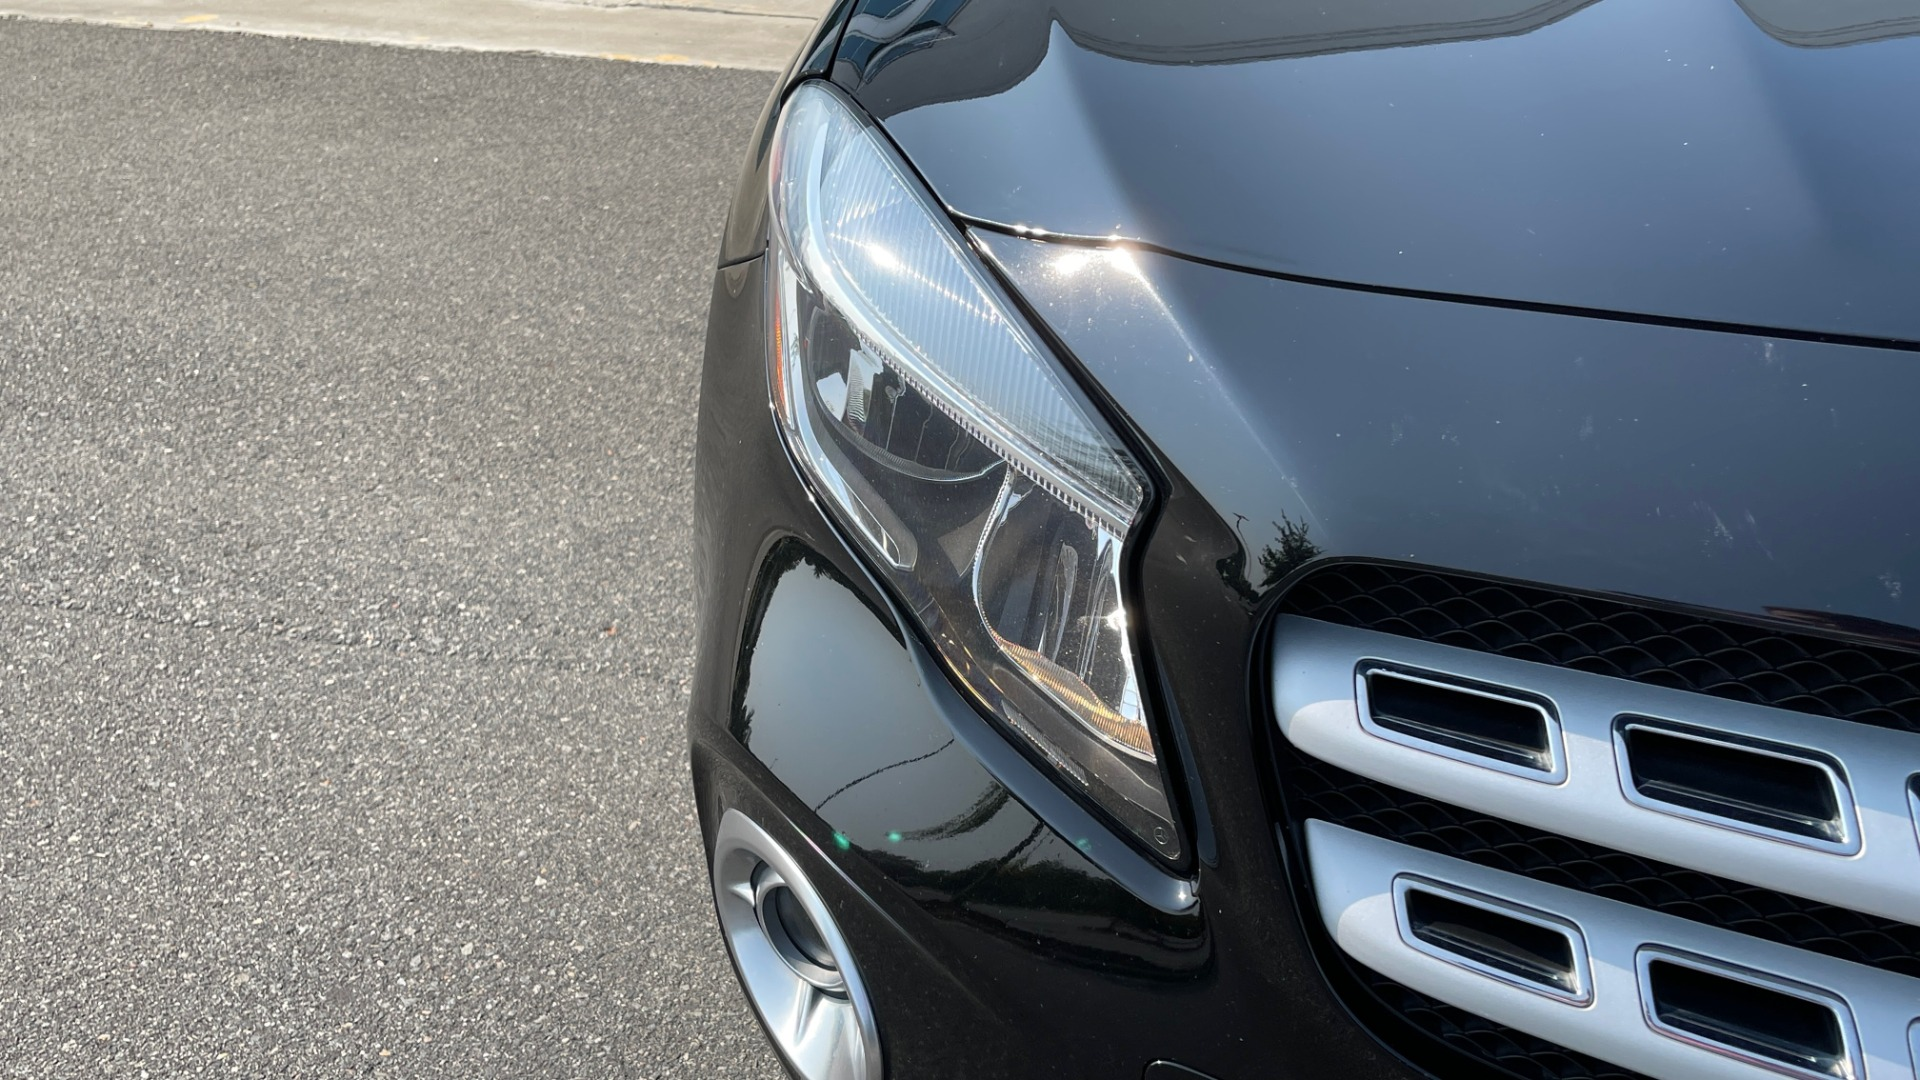 Used 2018 Mercedes-Benz GLA 250 SUV / GARMIN MAP PILOT / 18IN WHEELS / REARVIEW for sale $26,995 at Formula Imports in Charlotte NC 28227 12